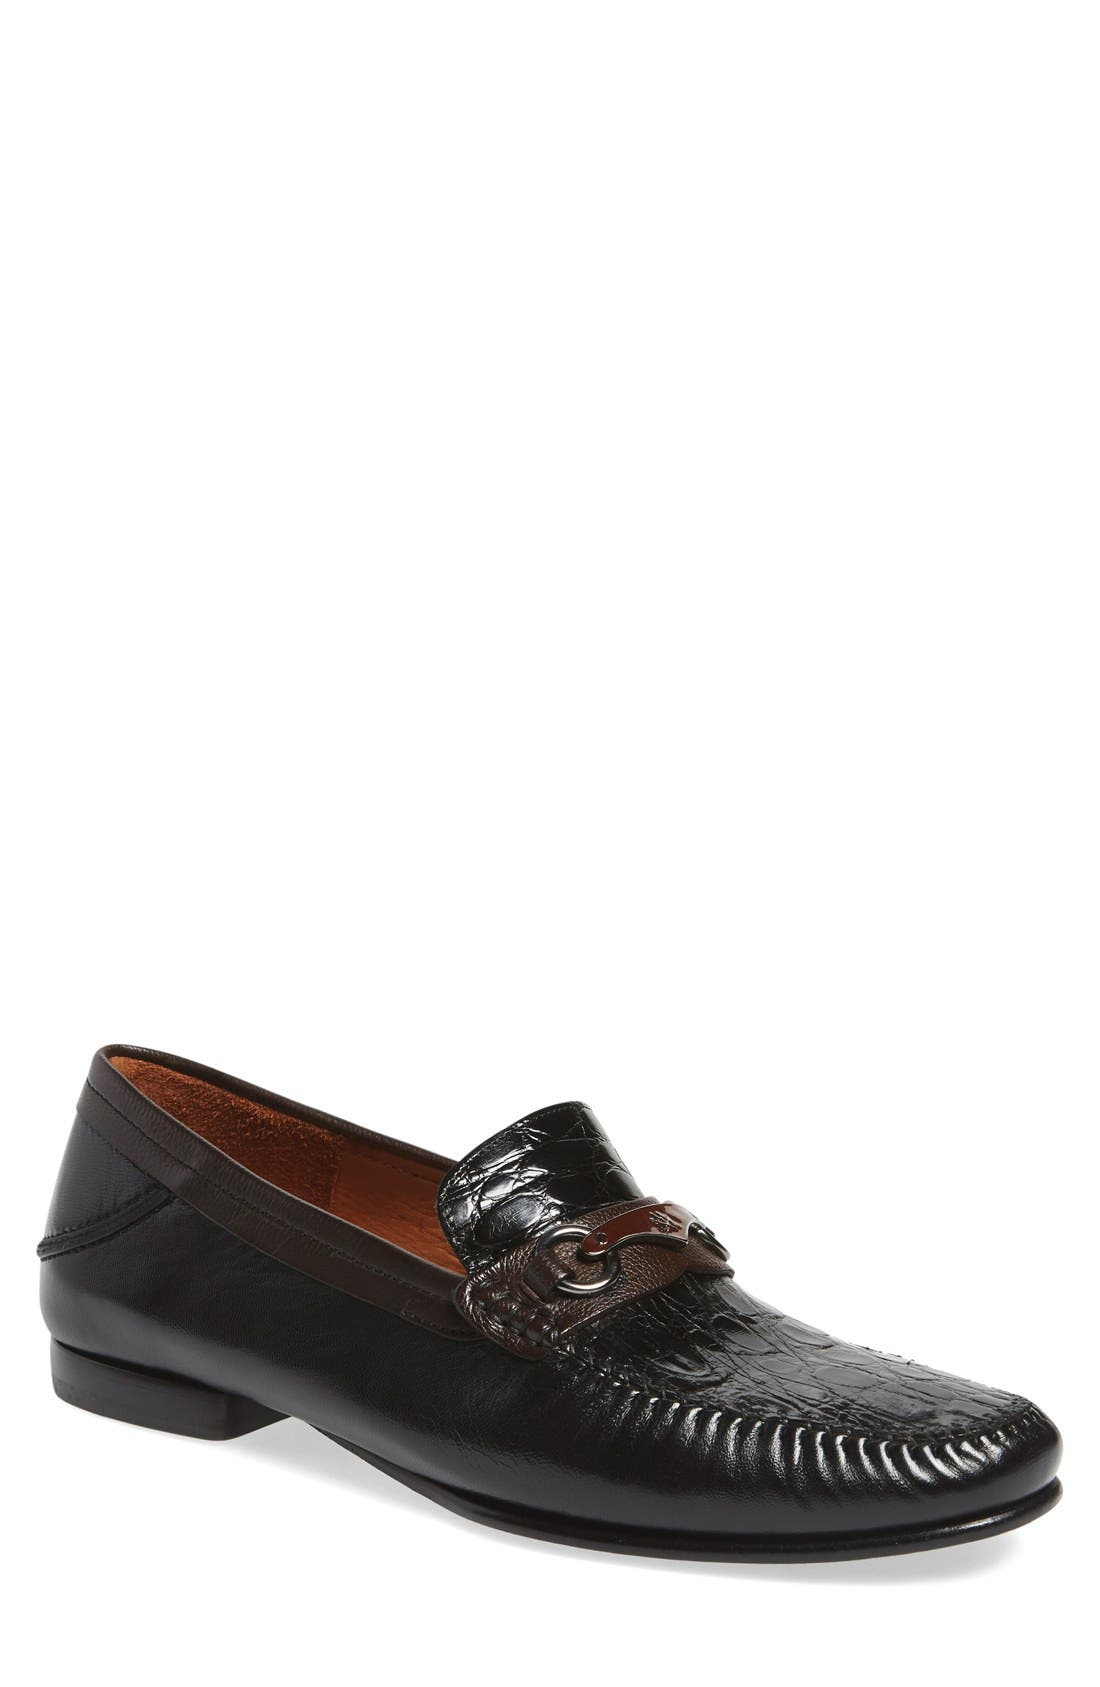 'Gaudi Venetian' Genuine Crocodile Bit Loafer,                         Main,                         color, 011